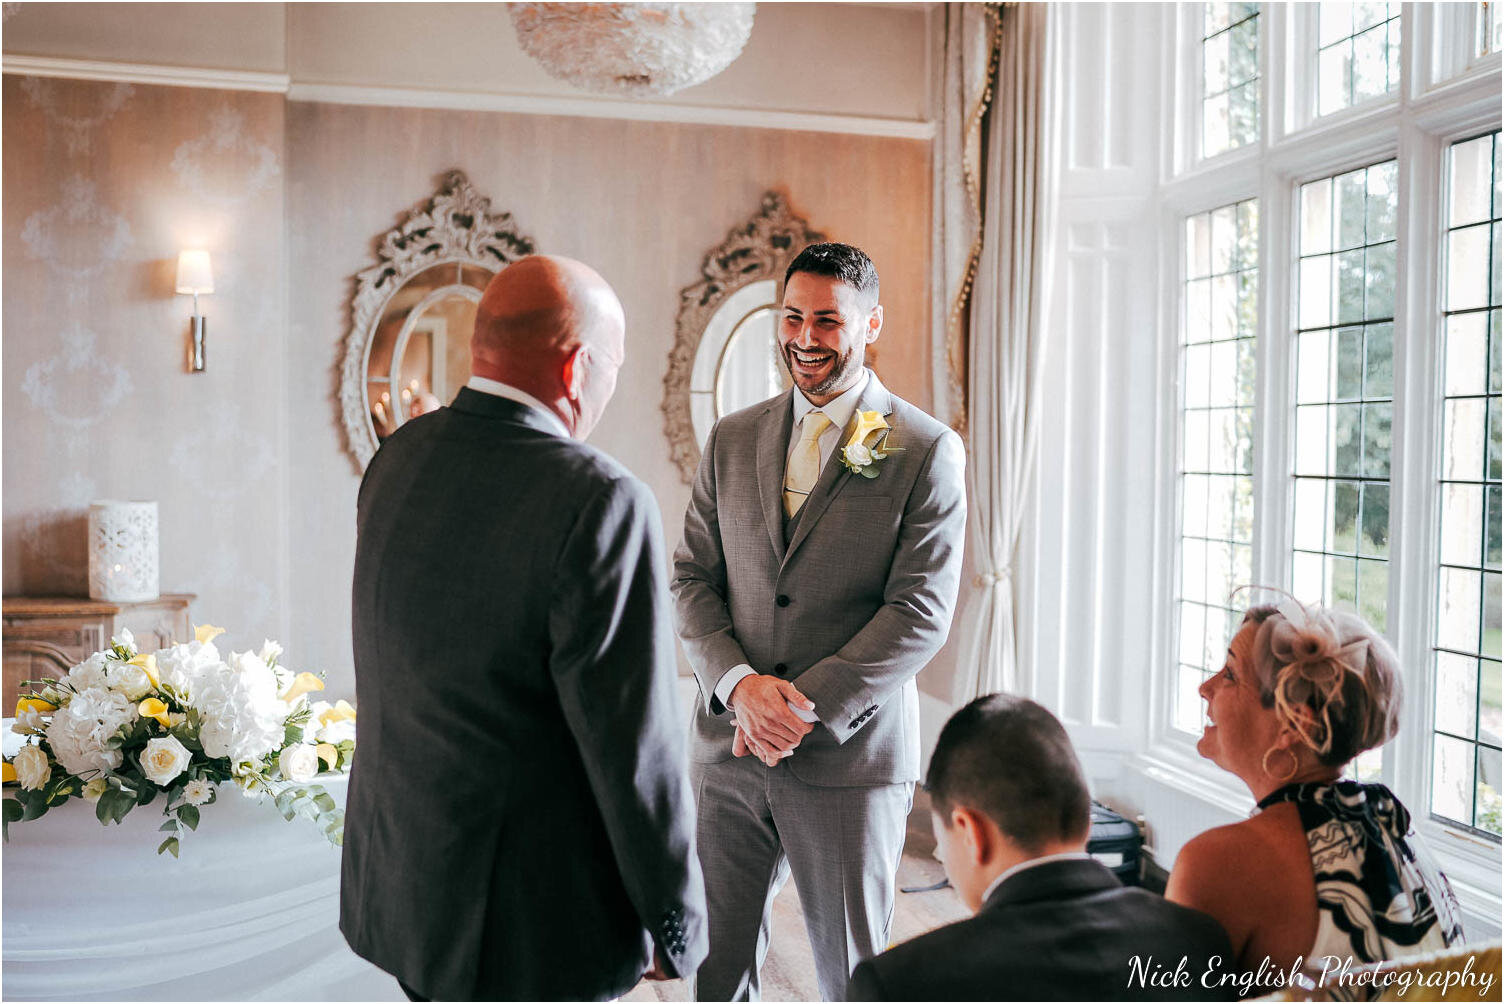 Falcon_Manor_Yorkshire_Wedding_Photographer-29.jpg